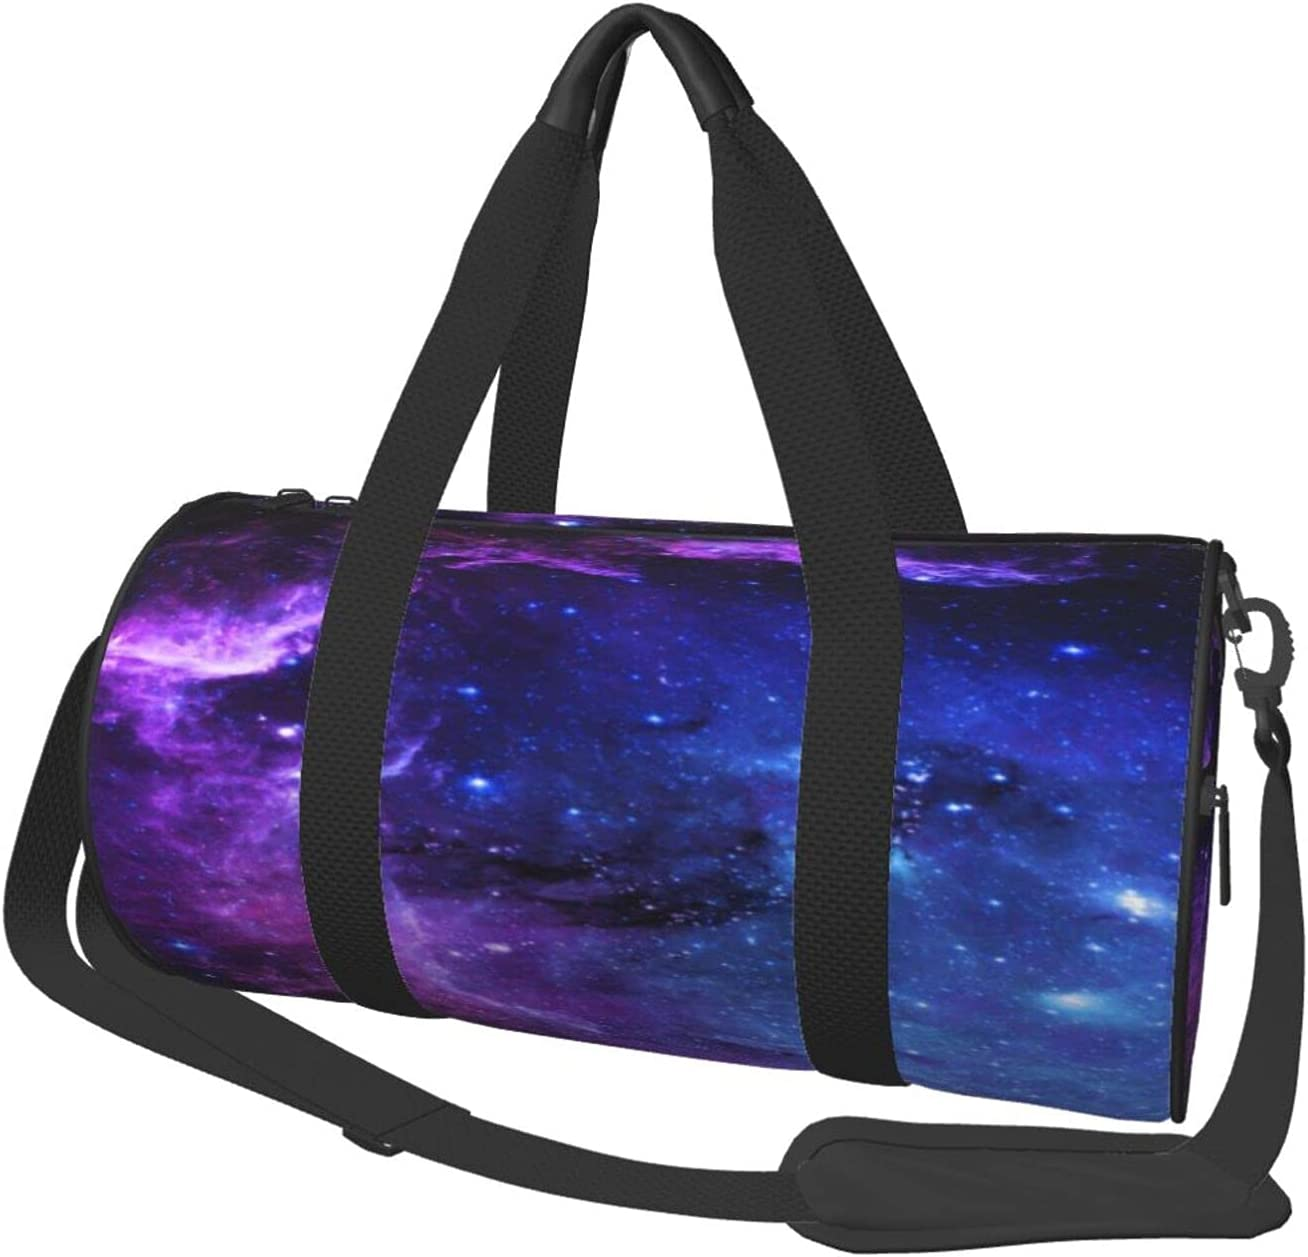 NCHOME Duffel depot Bag Space Star Great interest Roll Travel Unique Weeke